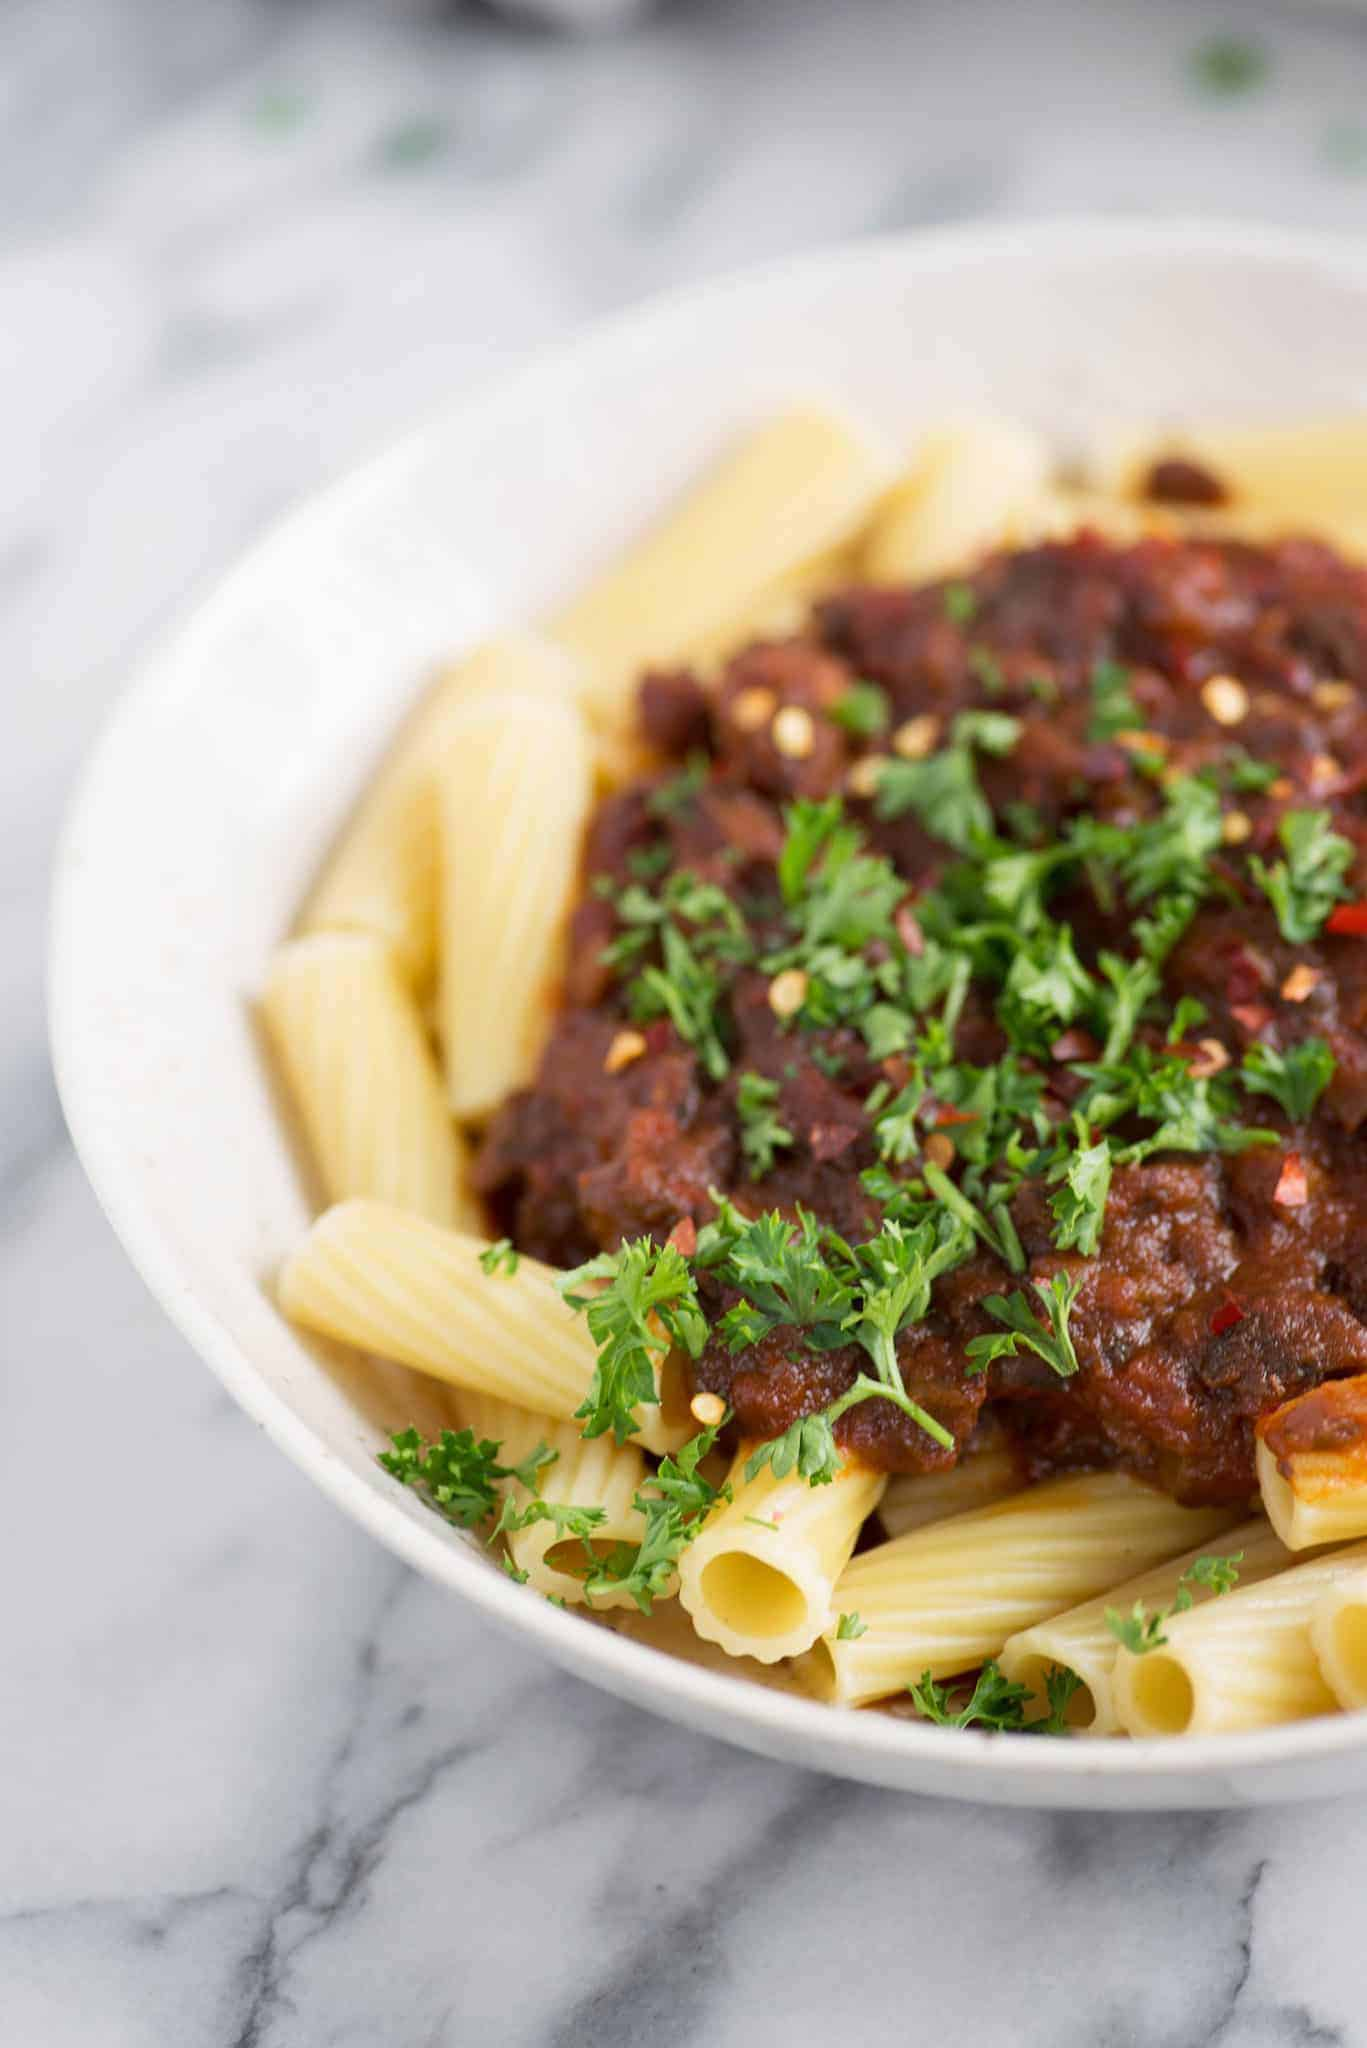 Vegan Pasta! This mushroom bolognese with rigatoni is super meaty and delicious. A must-make! | www.delishknowledge.com